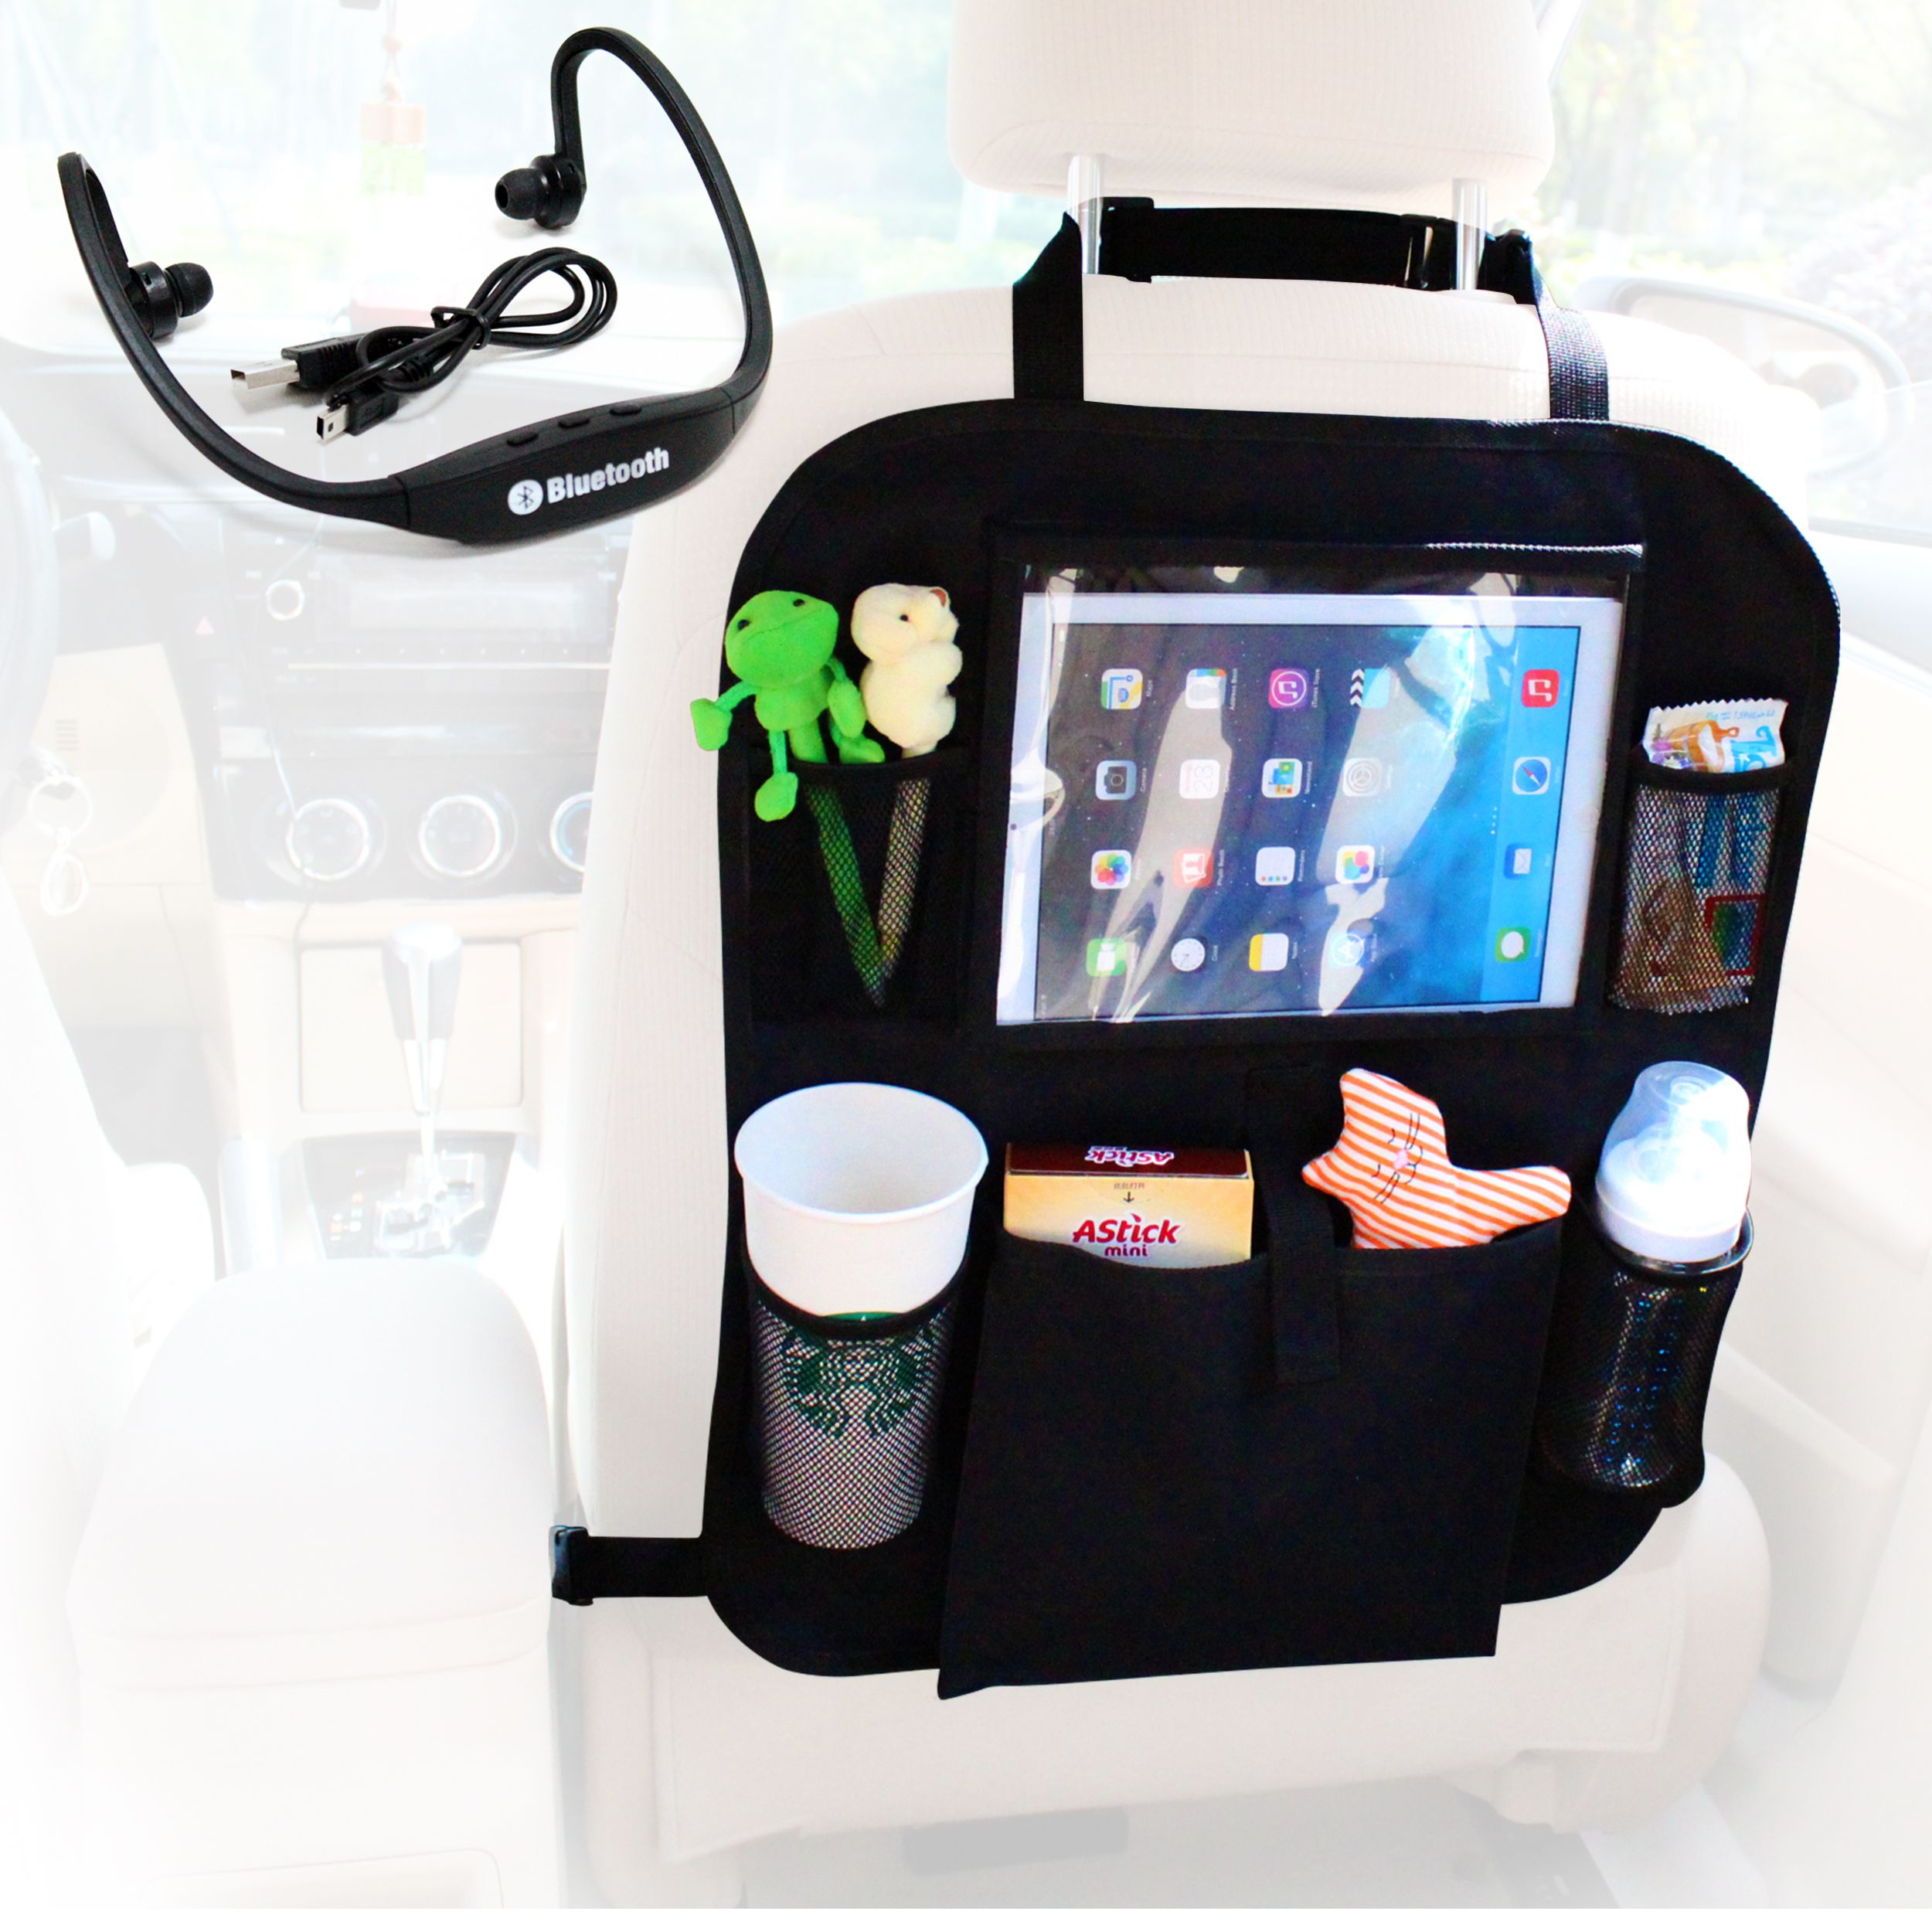 A Favorite I Love Organizer Ideas Cool Must Have Hack For Kids Bluetooth Headset In The Car This Backseat Ipad Comes With Wireless Best Movie Watching